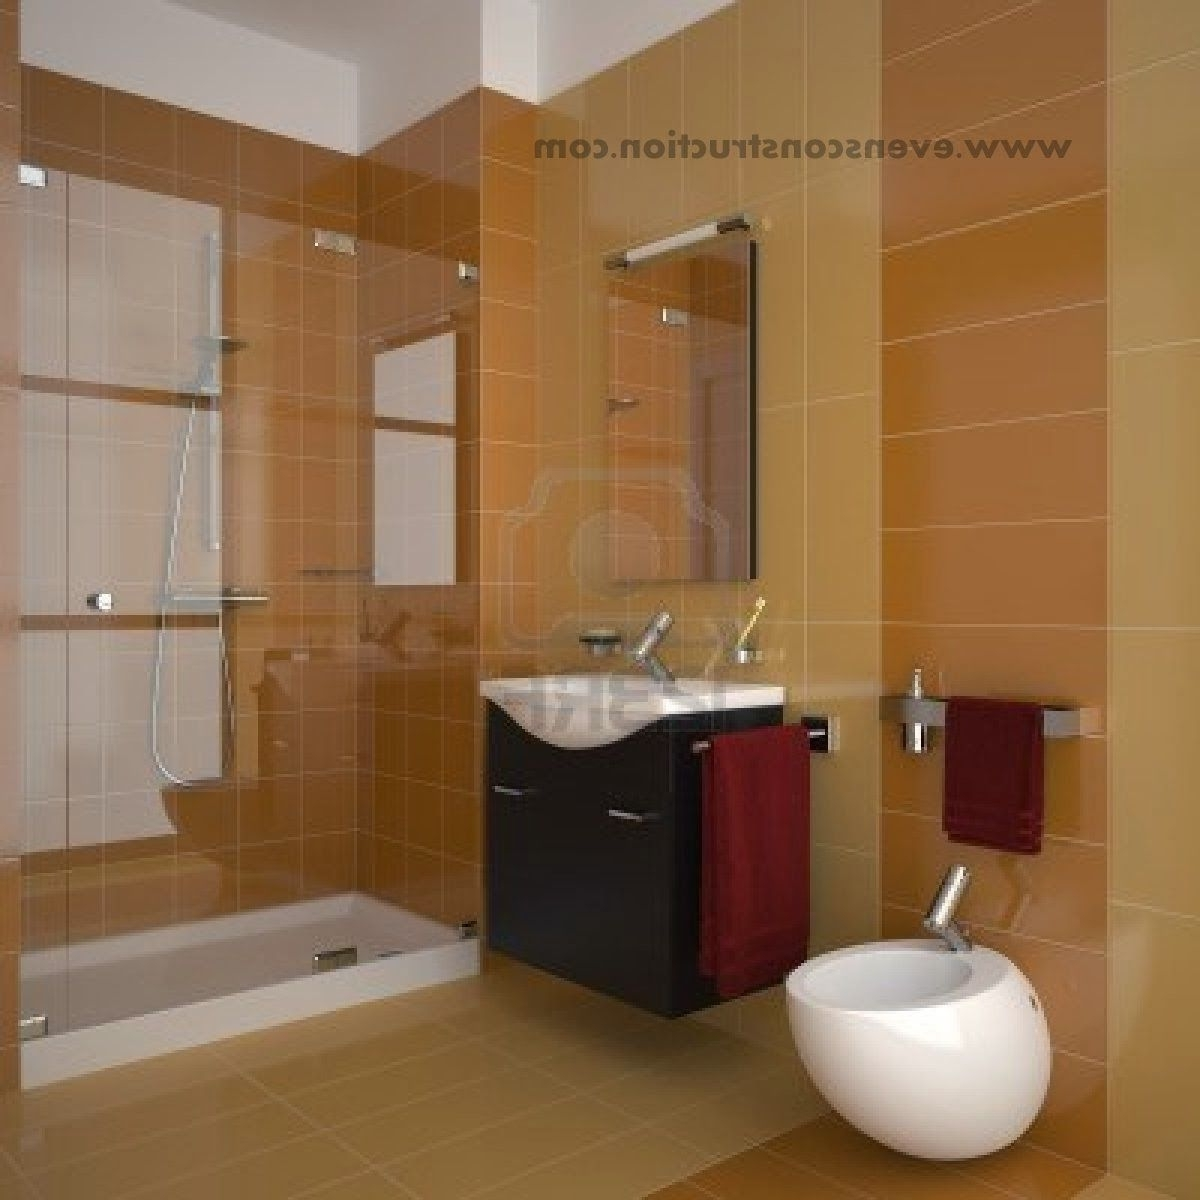 Kerala House Plans Kerala House Designs Kerala Interior 30+ Kerala House Bathroom Designs Ideas